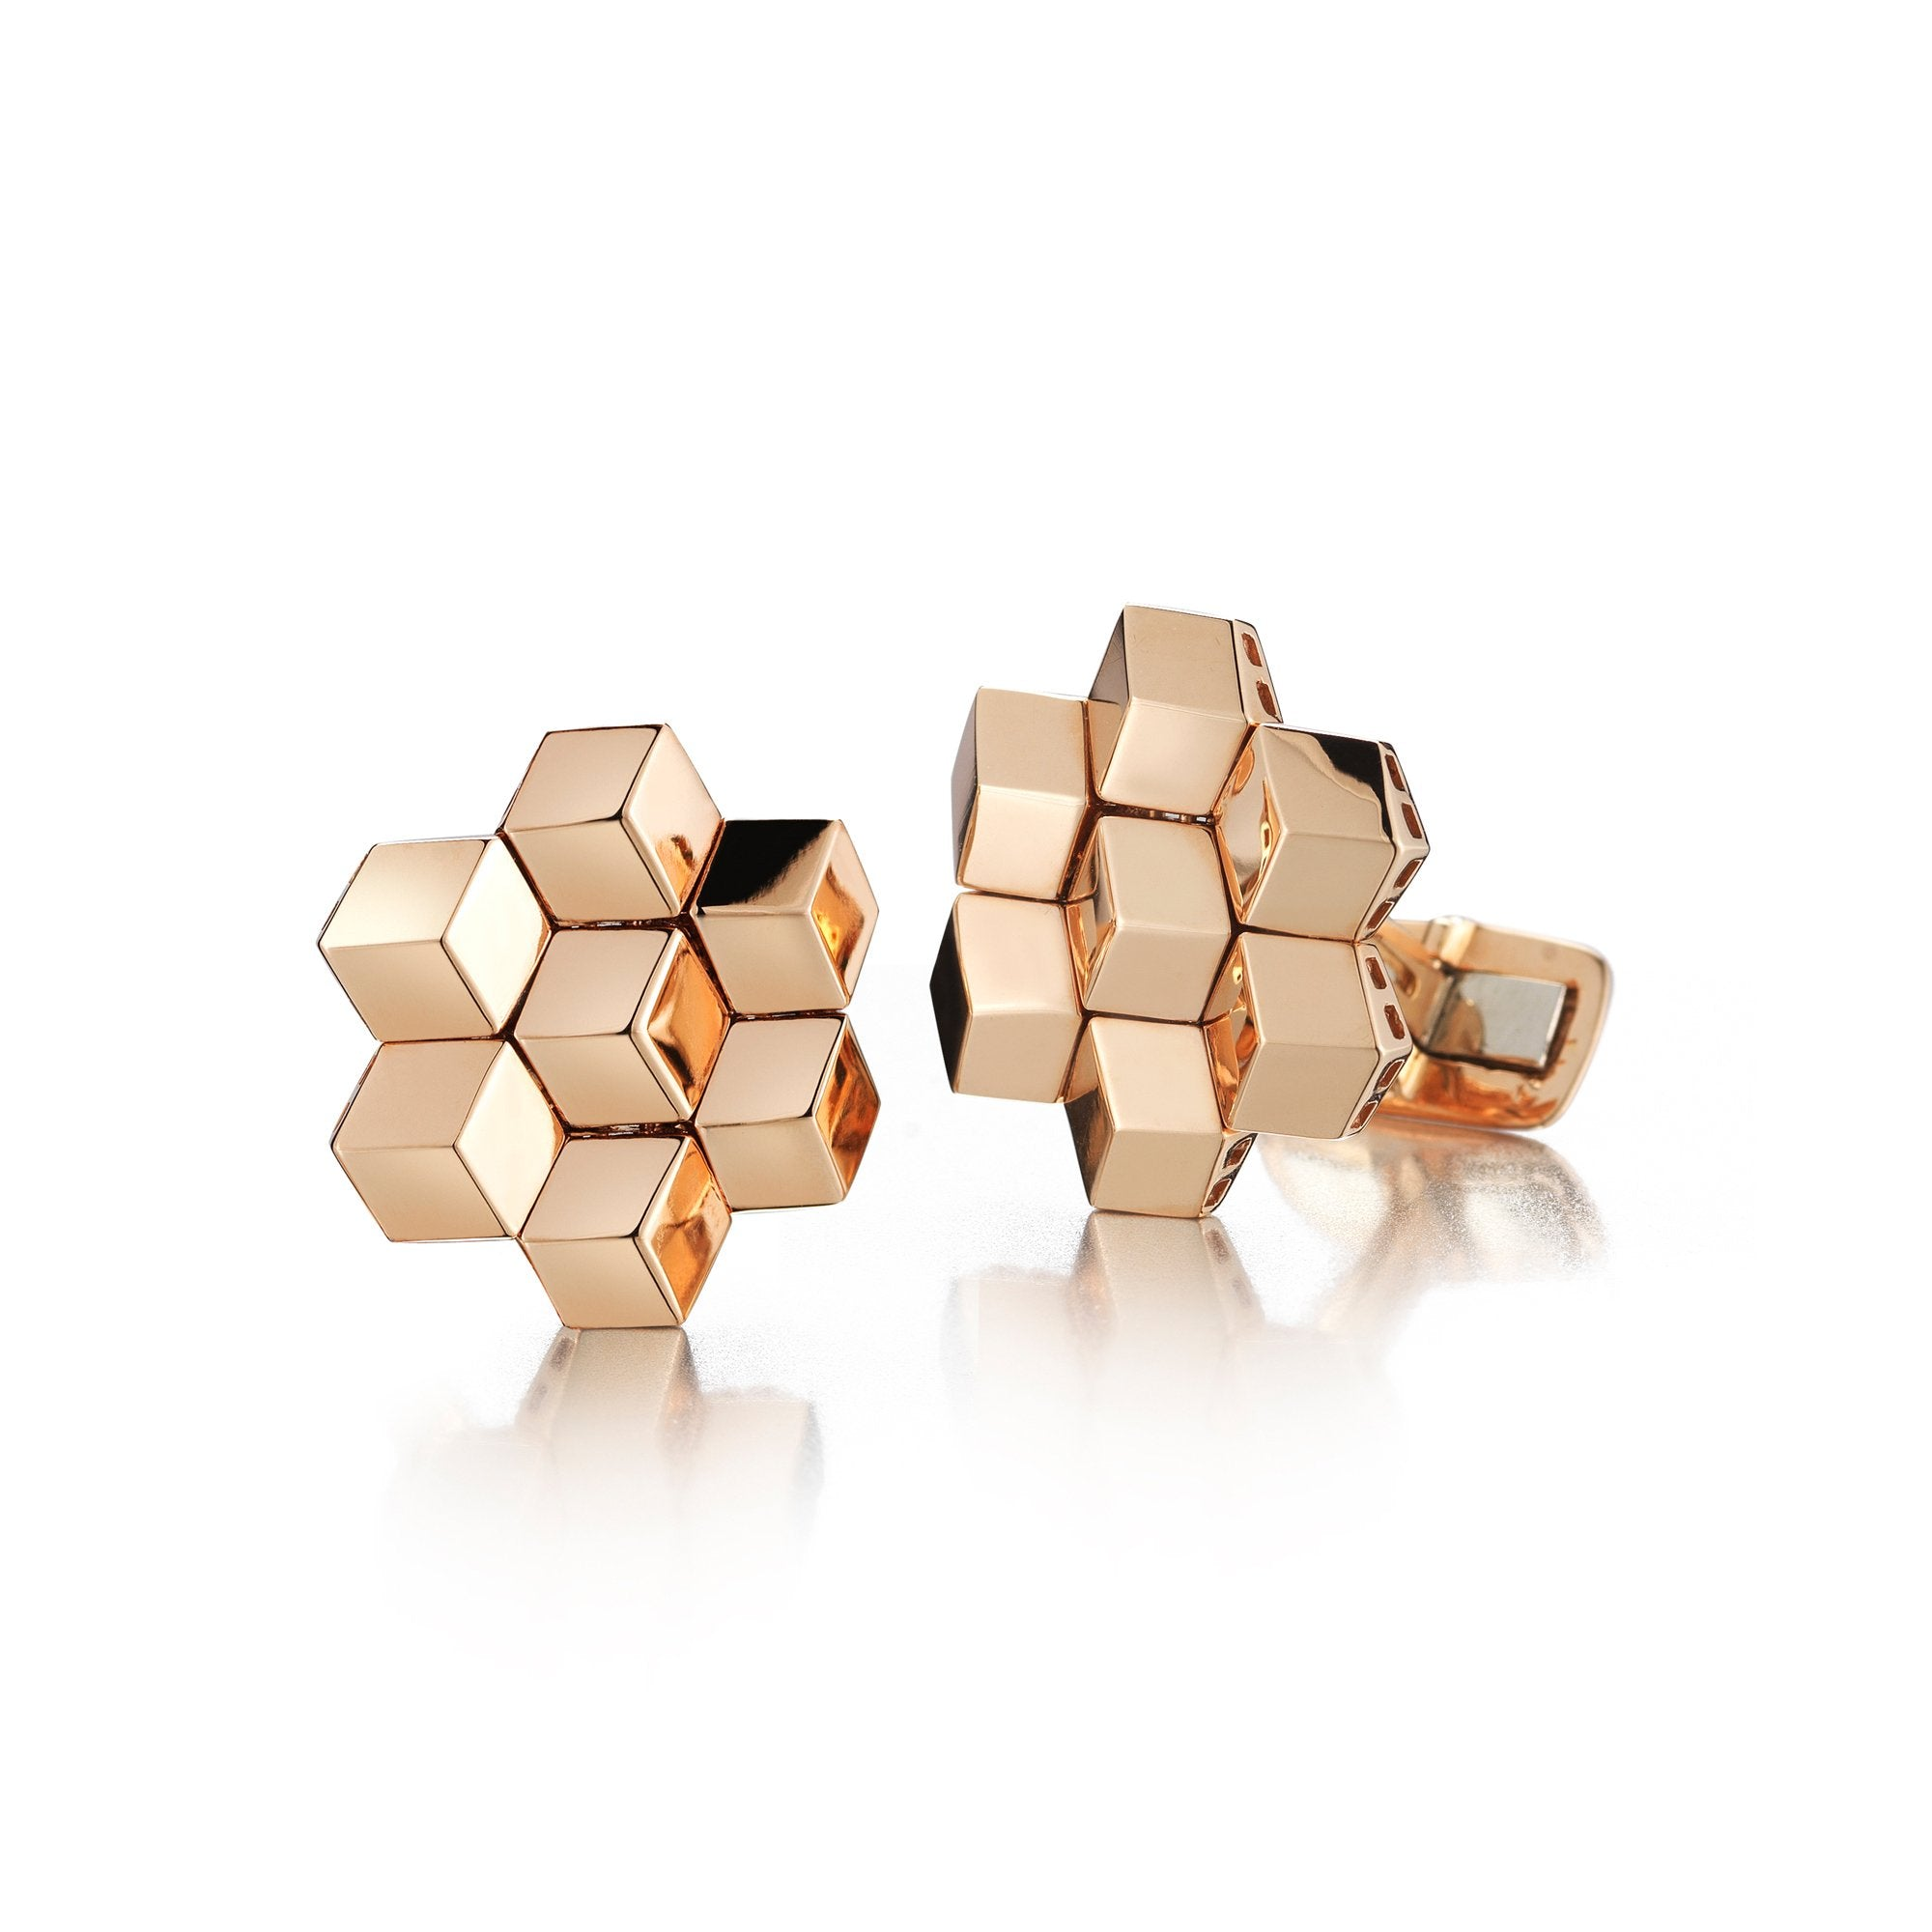 18kt Rose Gold Cufflinks - Paolo Costagli